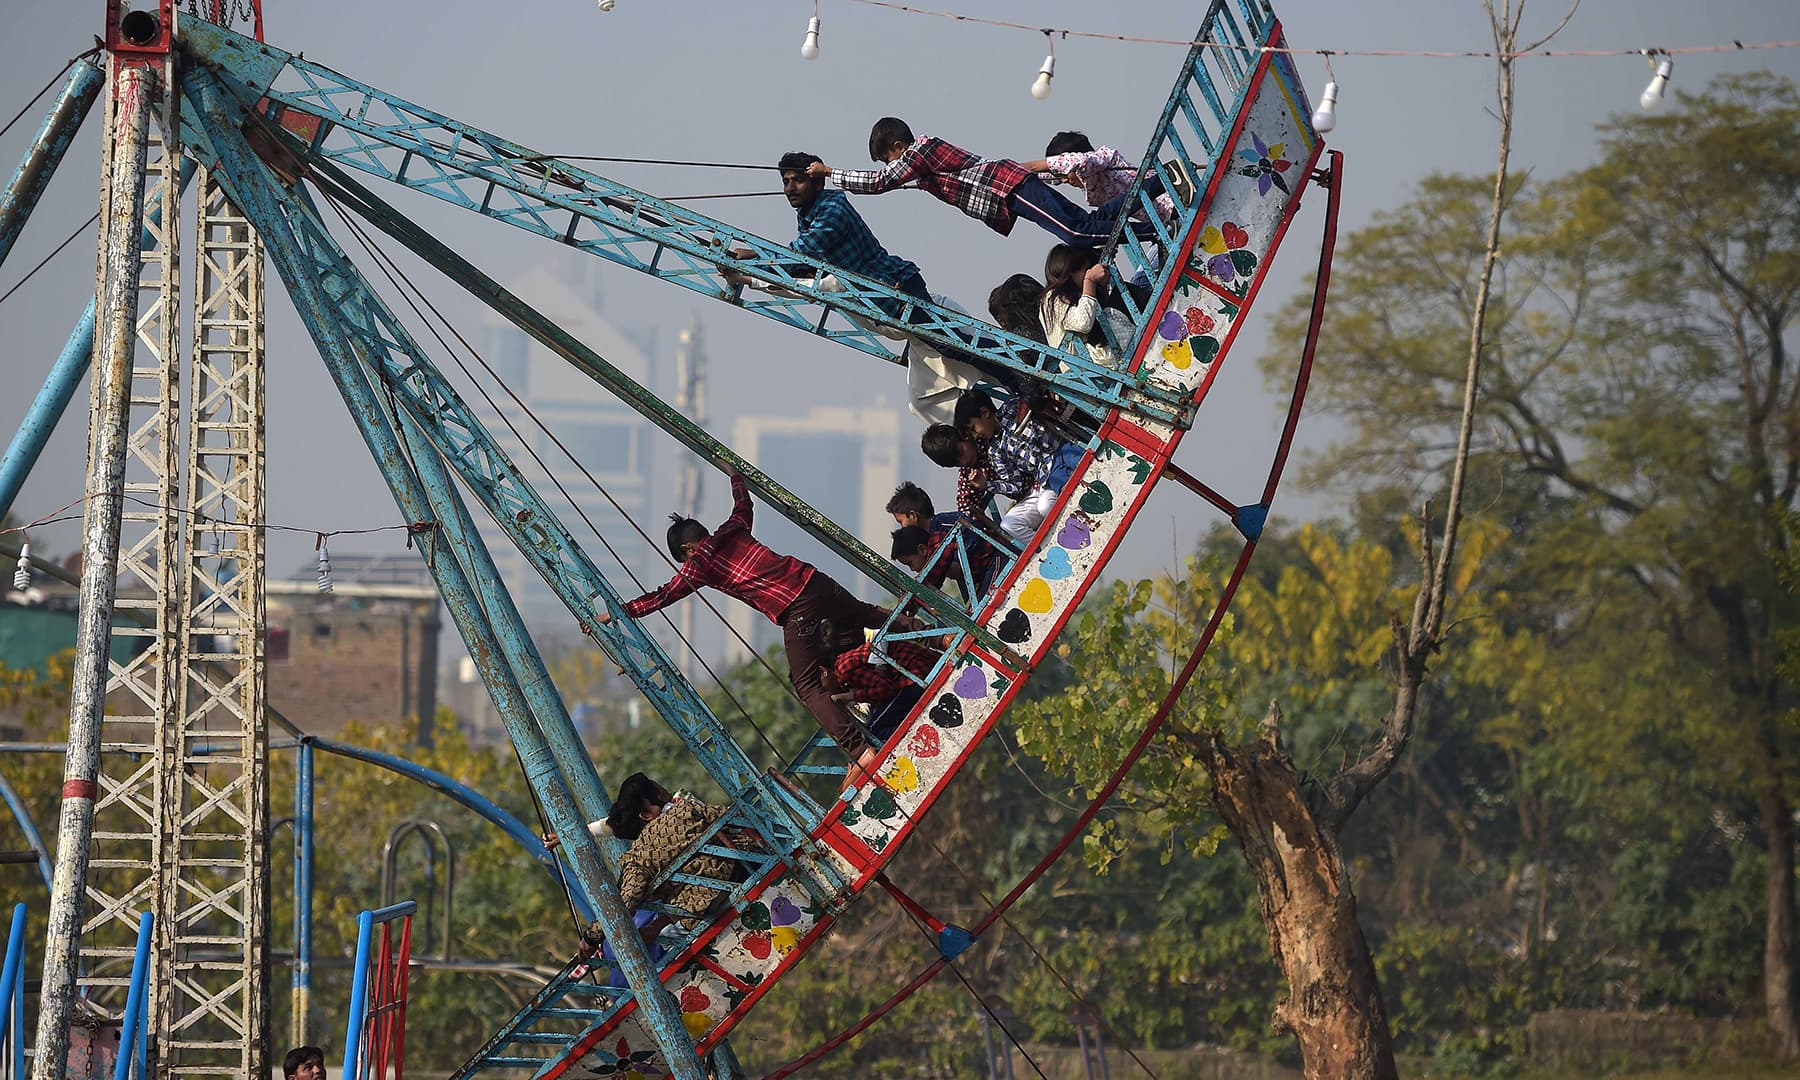 Children ride on a swing on Christmas Day in Islamabad. — AFP